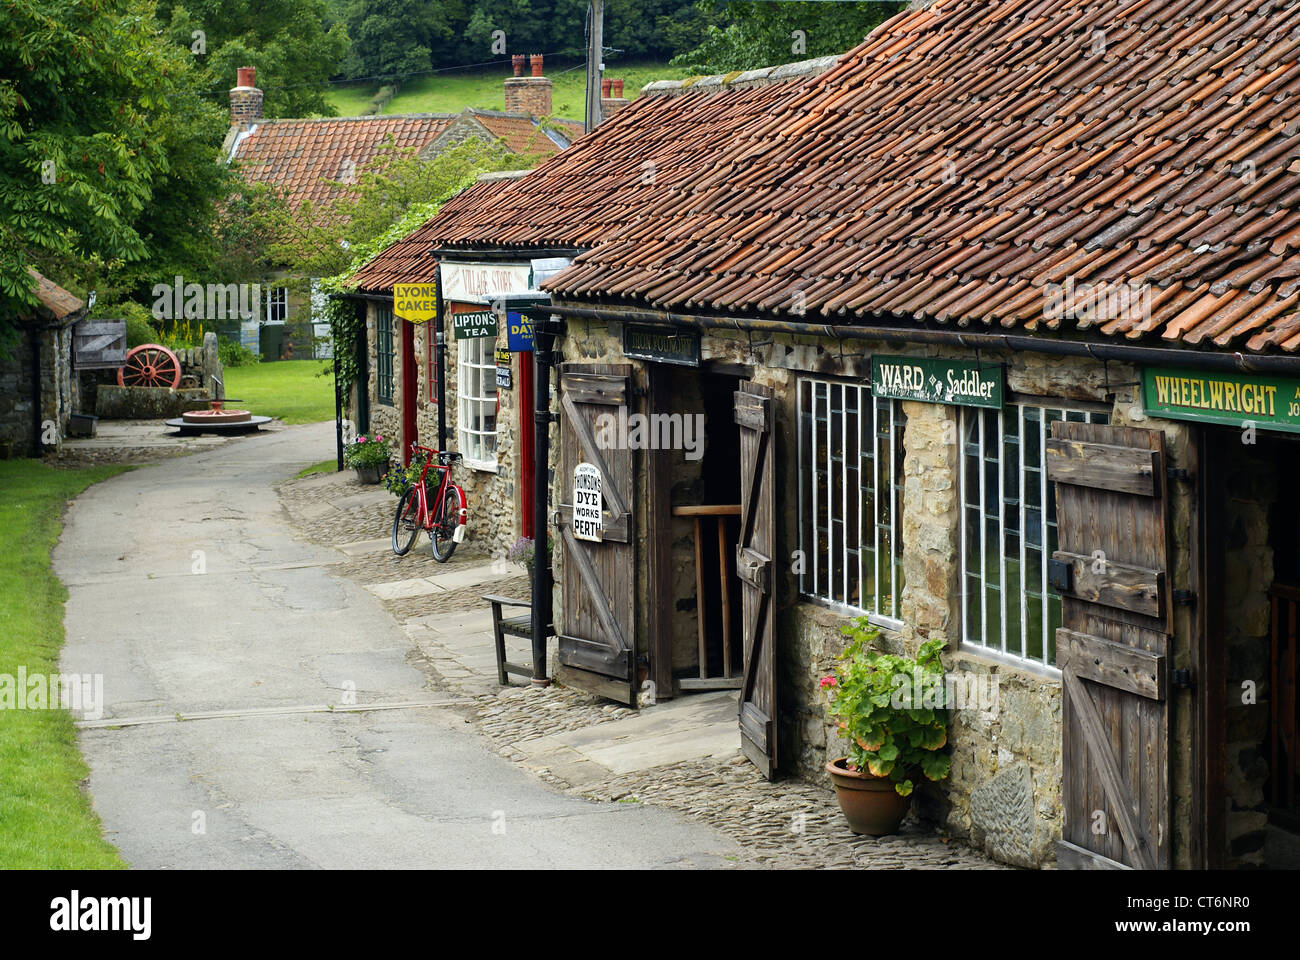 An old street scene at an English folk museum - Stock Image